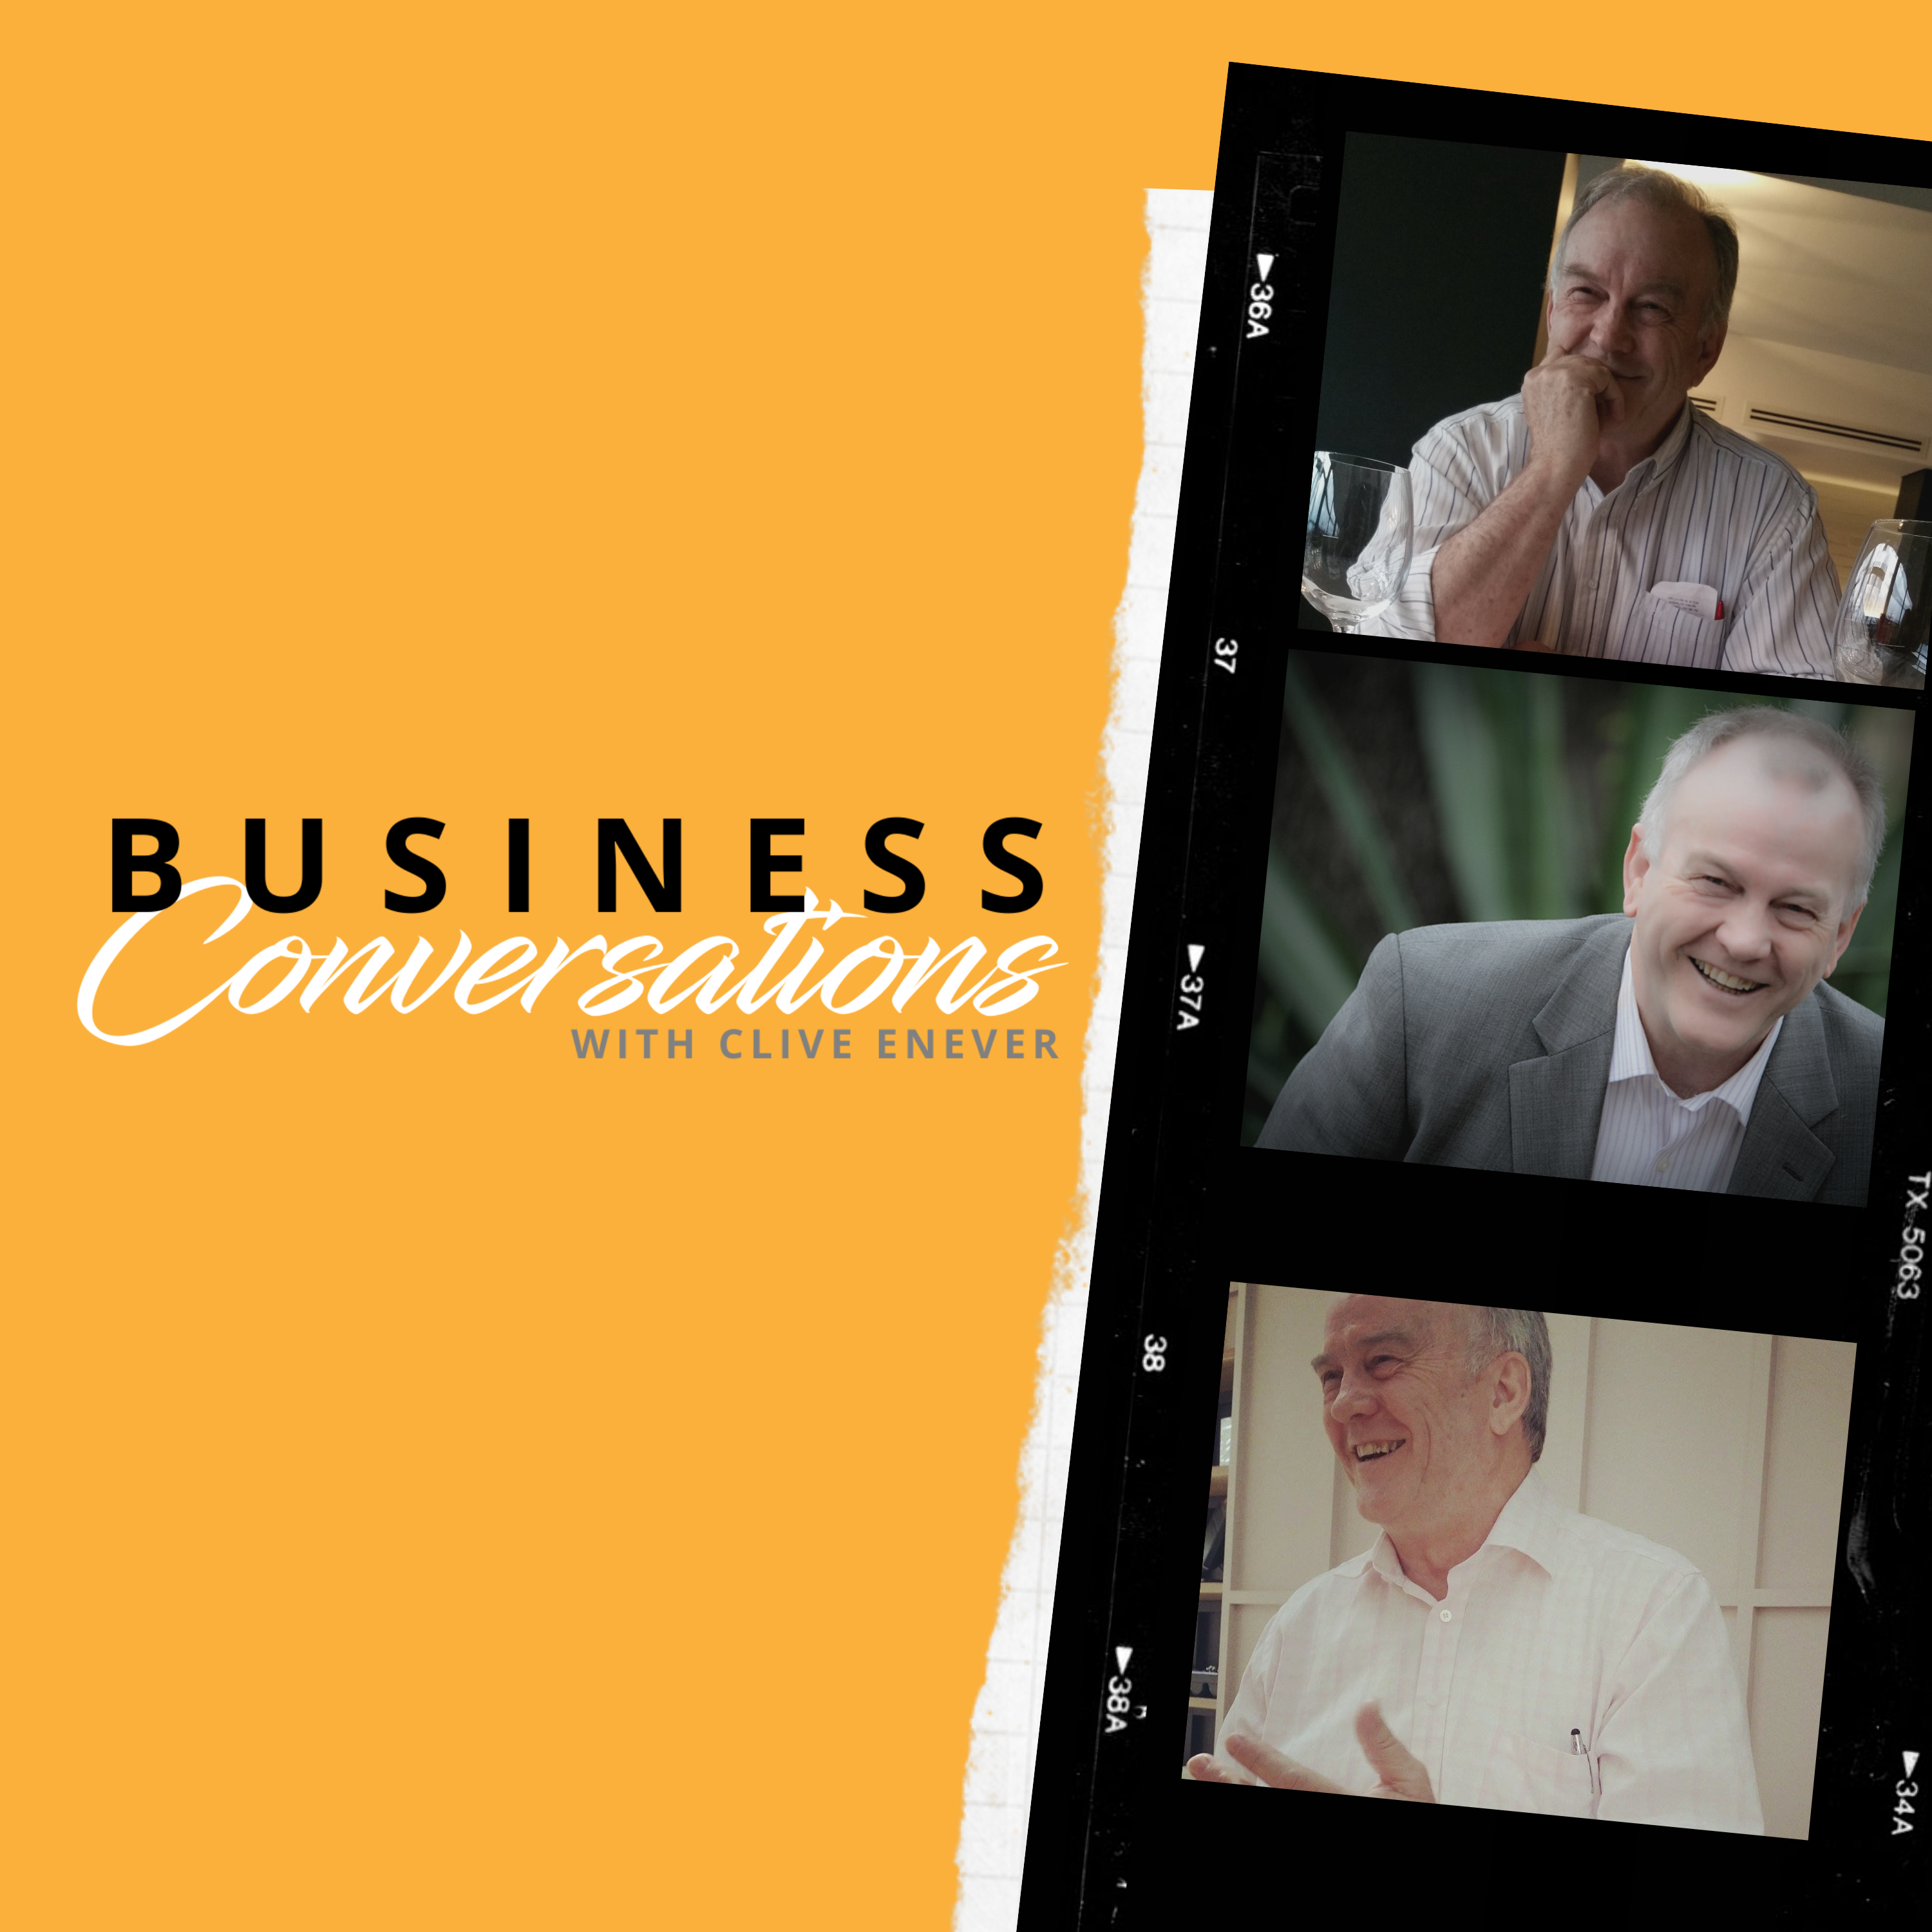 Business Conversations with Clive Enever